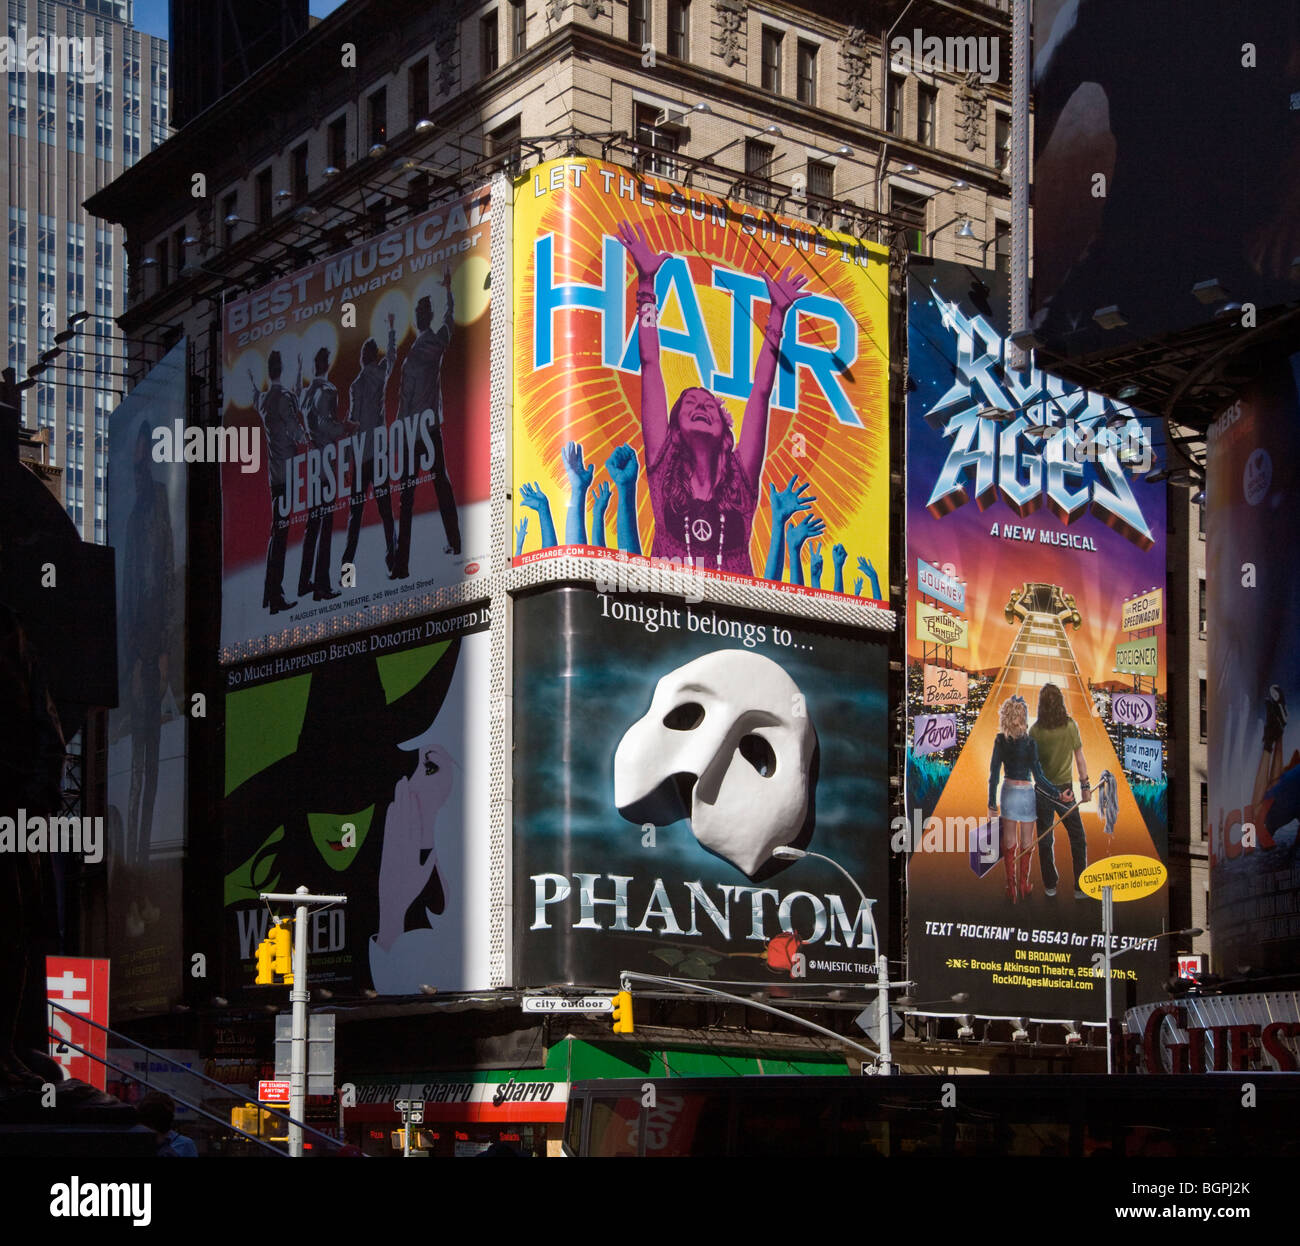 BROADWAY ADS for Phantom, Hair, Rock of Ages, Jersey Boys and Wicked - NEW YORK, NEW YORK - Stock Image